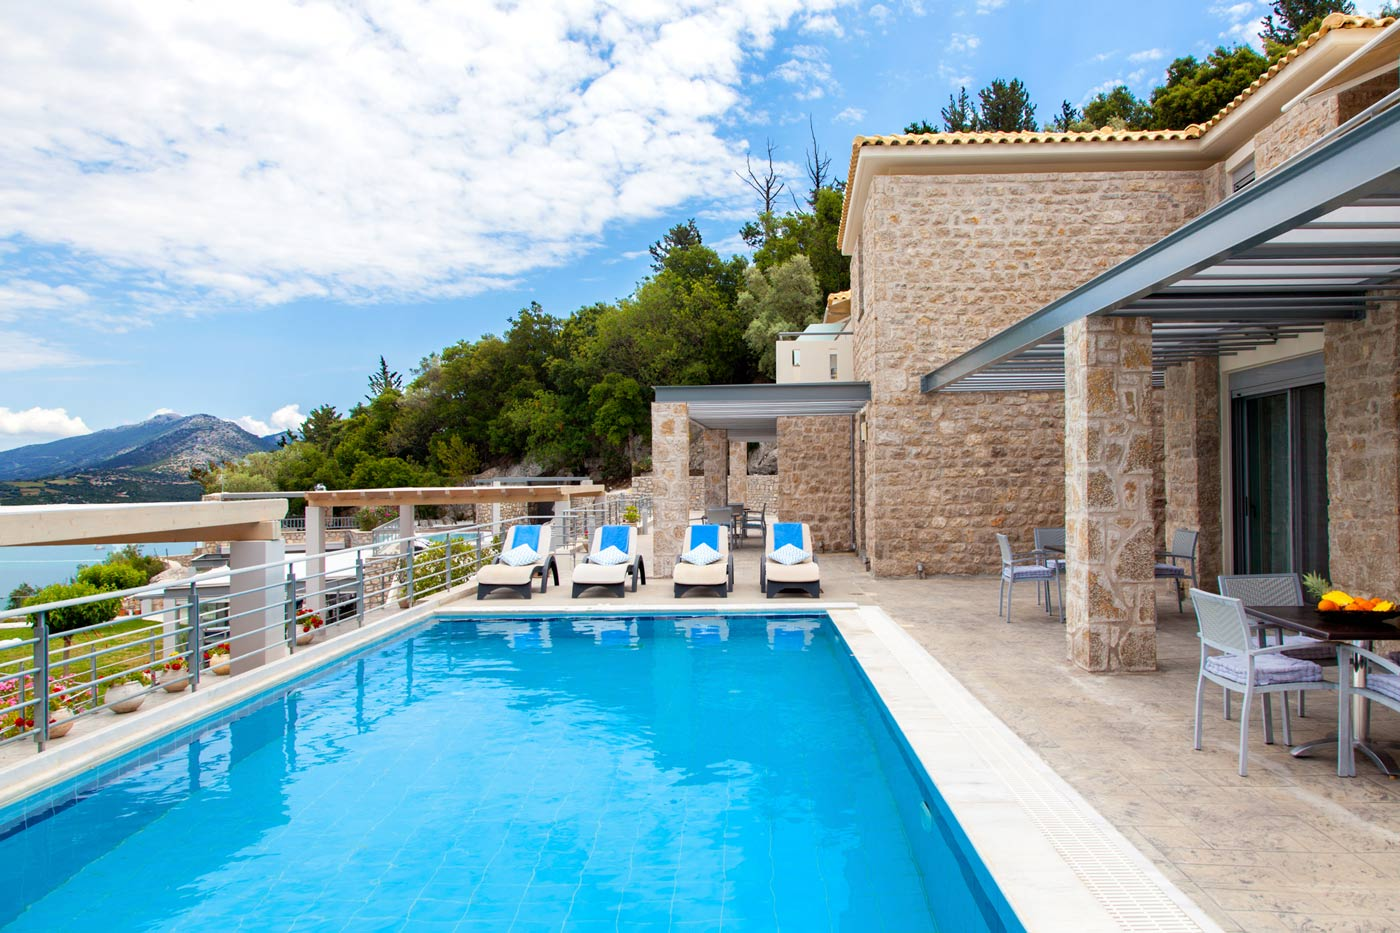 Thealos Village Pool View 3.jpg